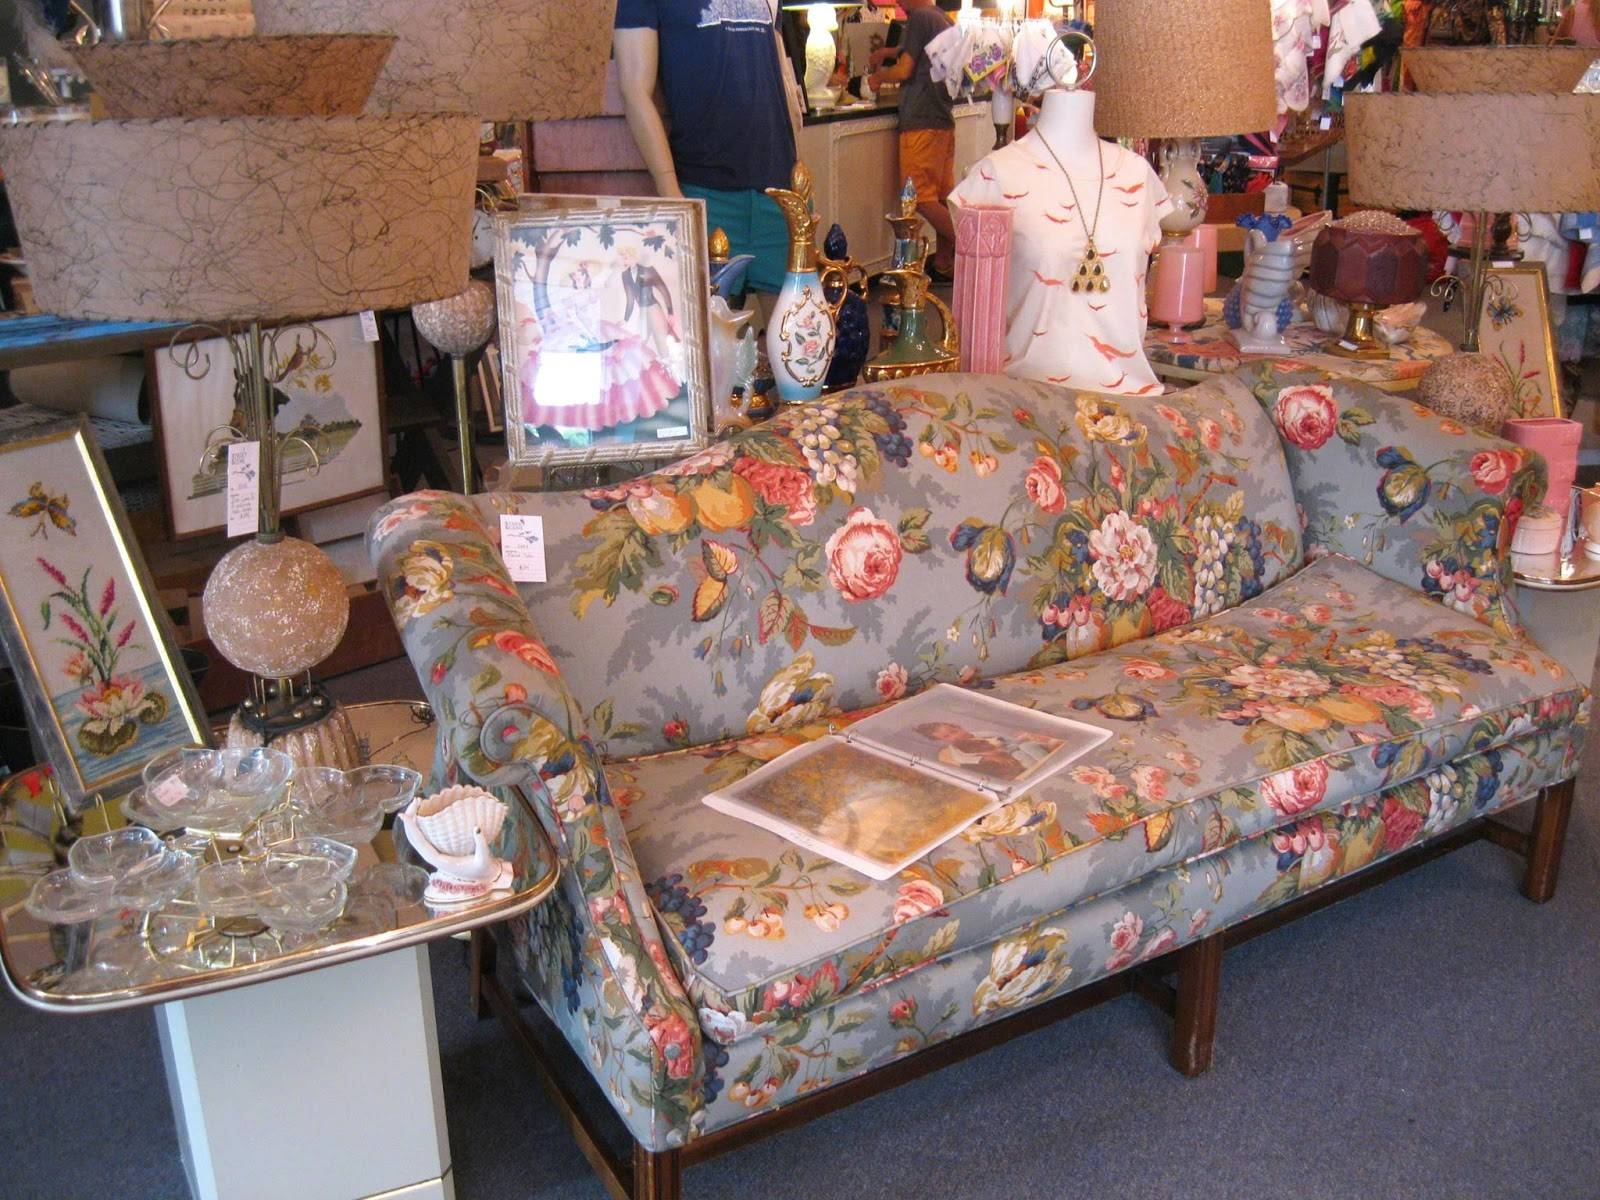 Chintz Sofa - Gallery Image Serenityrealm intended for Chintz Covered Sofas (Image 15 of 30)